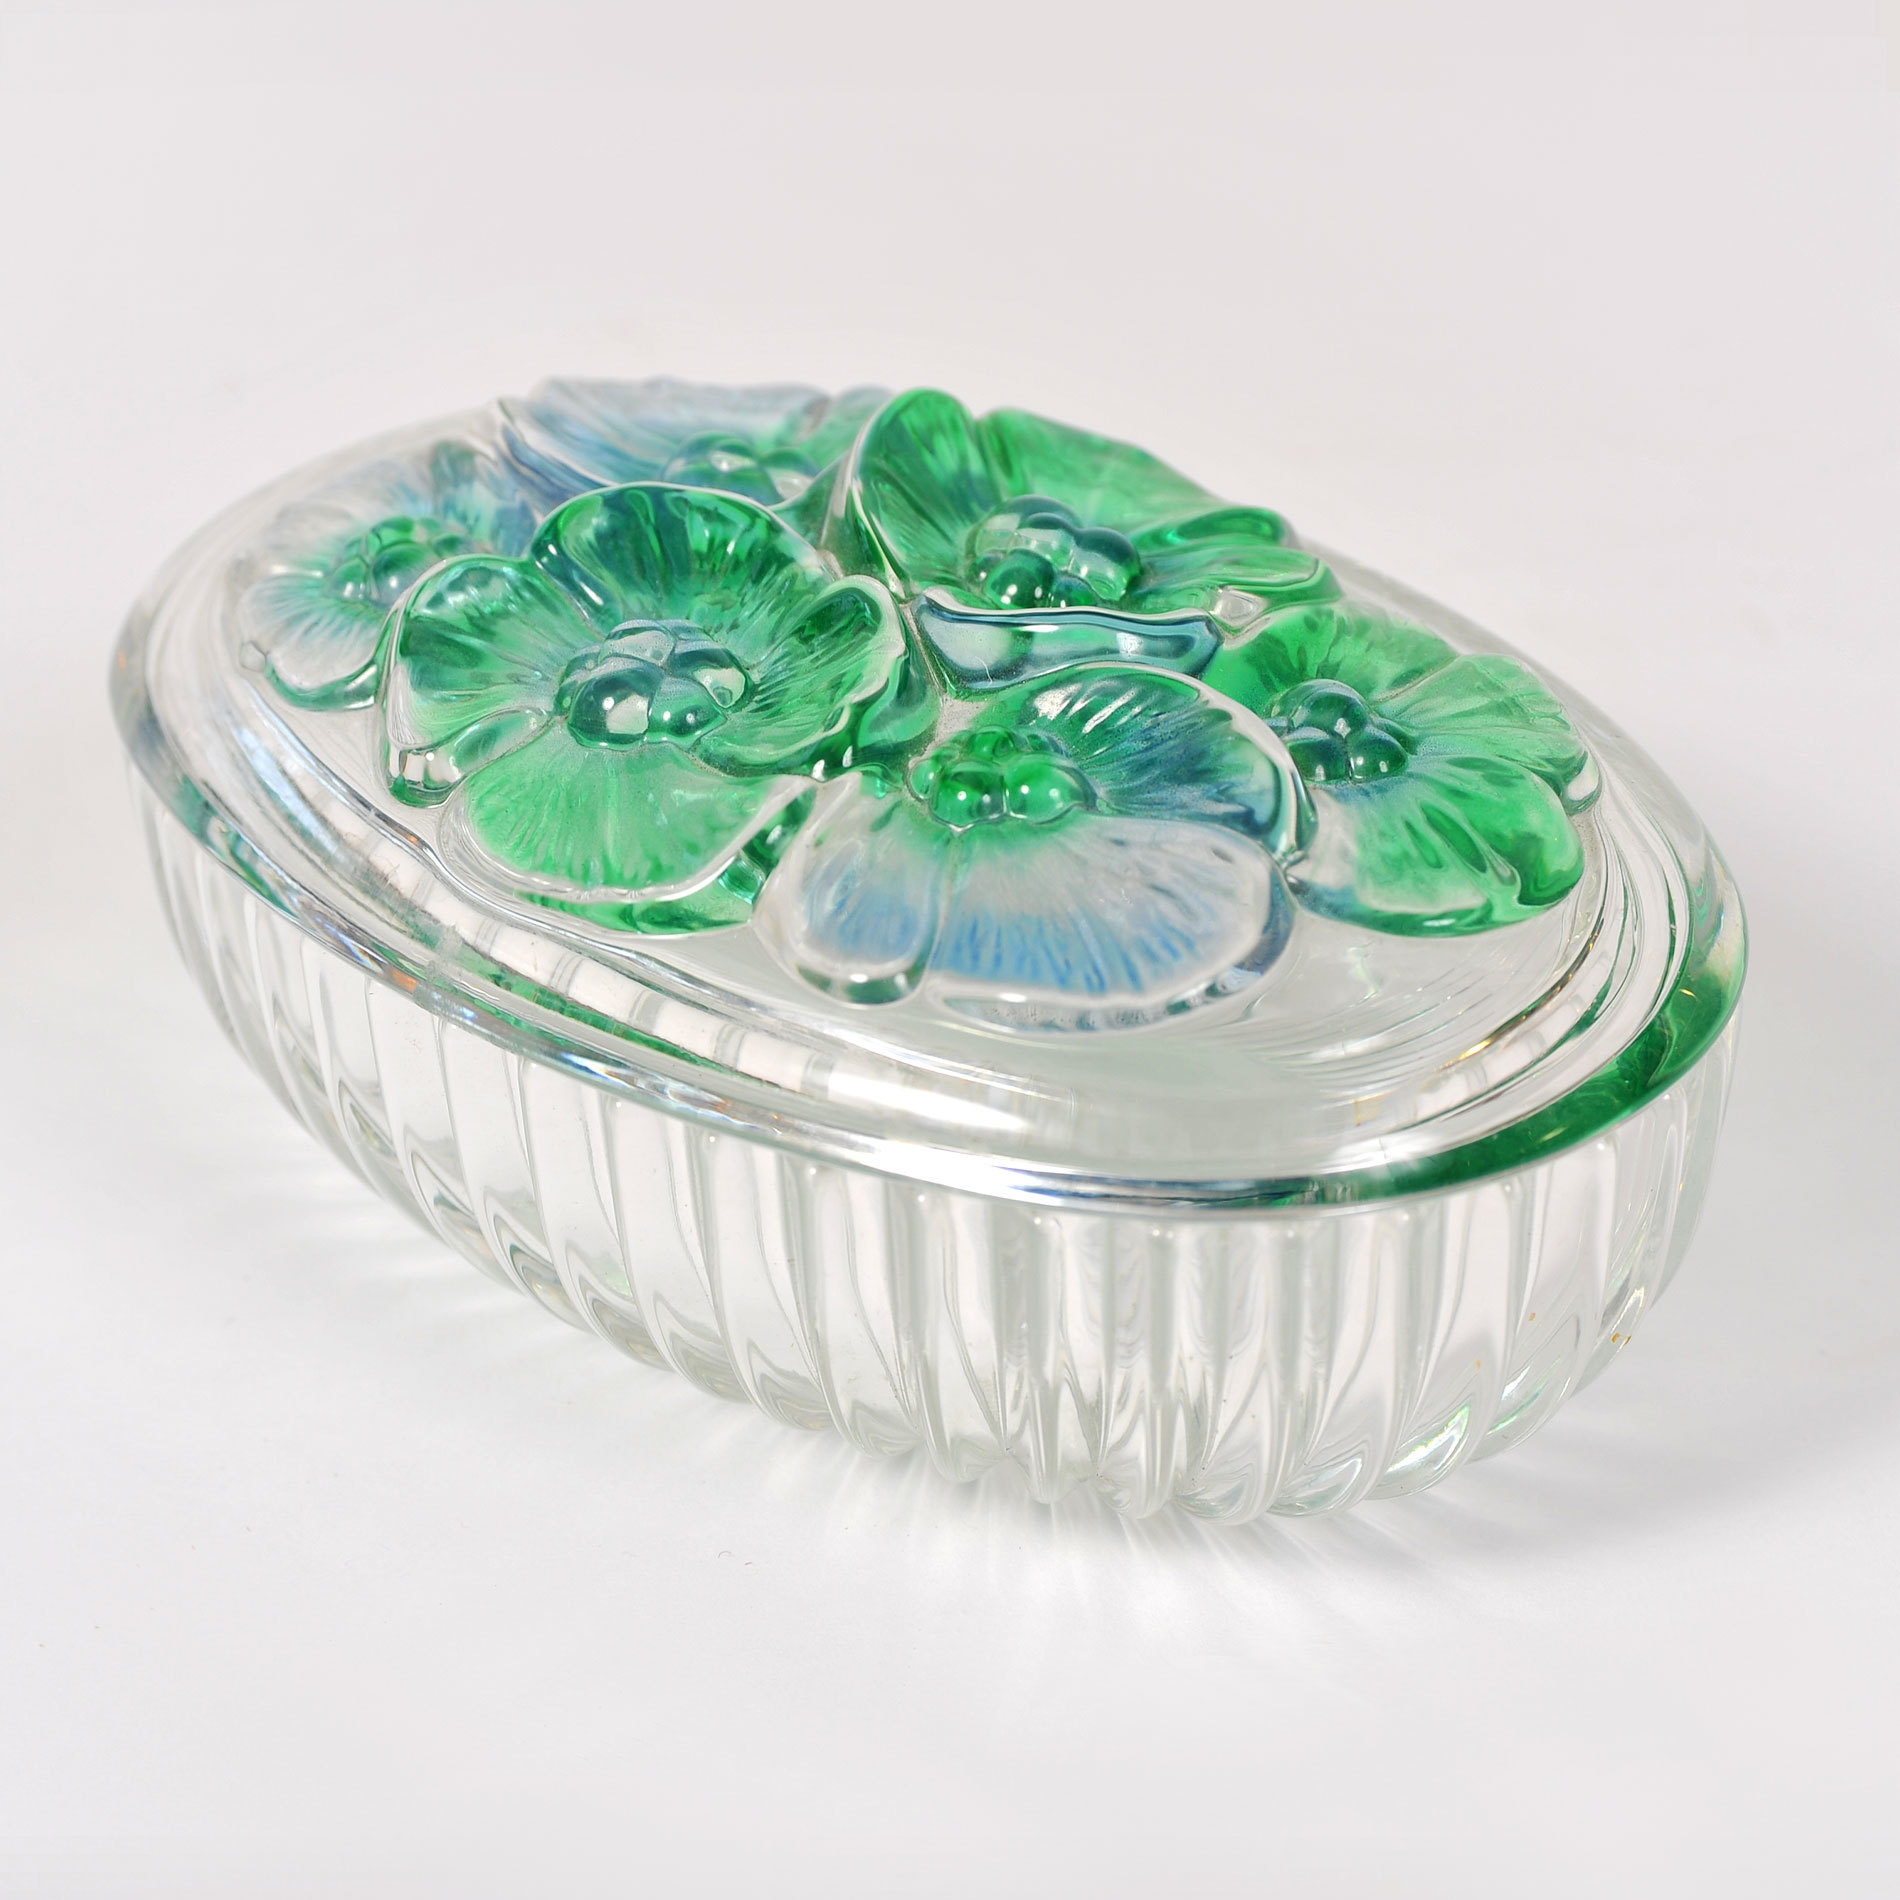 Glass Lidded Bowl 03